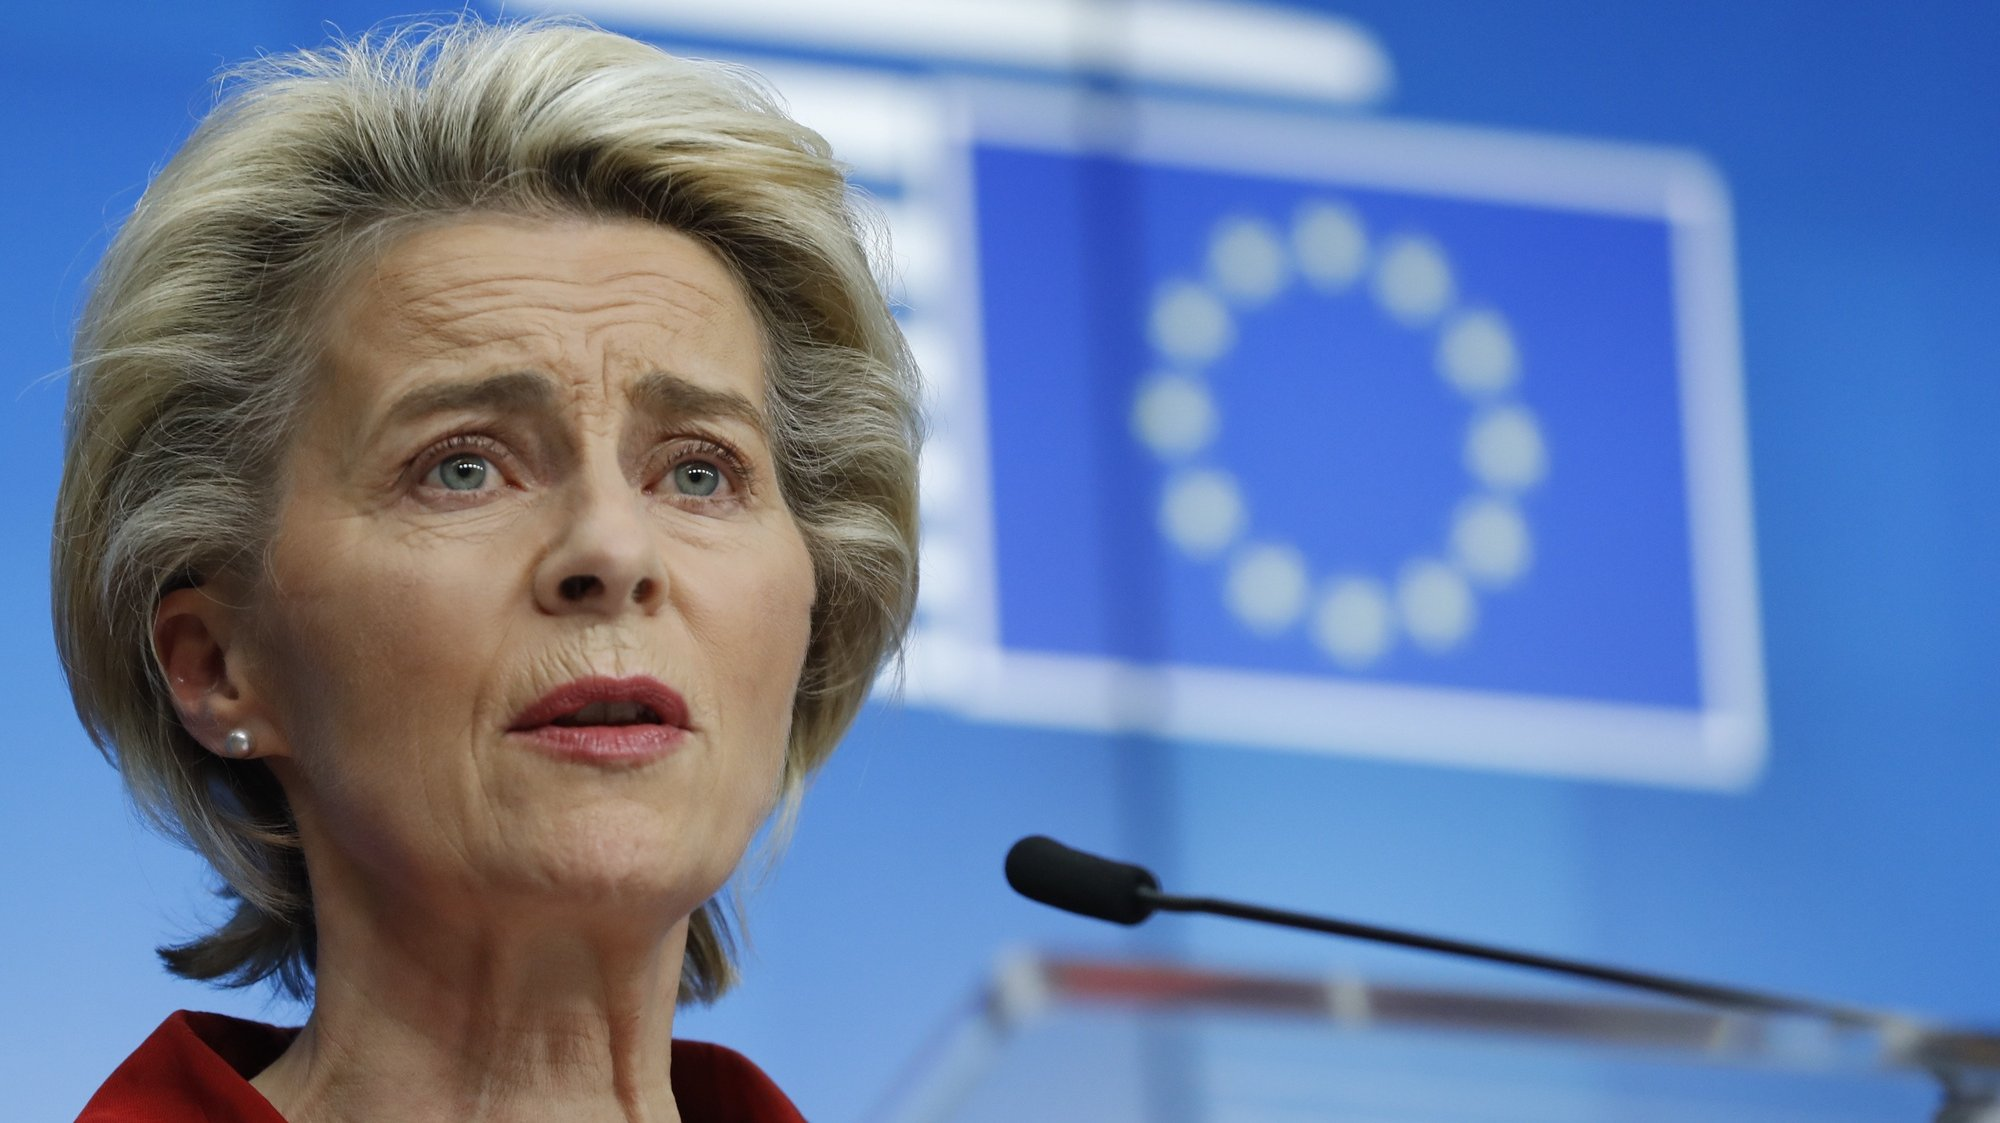 epa08784749 European Commission President Ursula Von Der Leyen gives a press briefing at the end of European council mainly focused on COVID-19 crisis, in Brussels, Belgium, 29 October 2020.  EPA/OLIVIER HOSLET / POOL